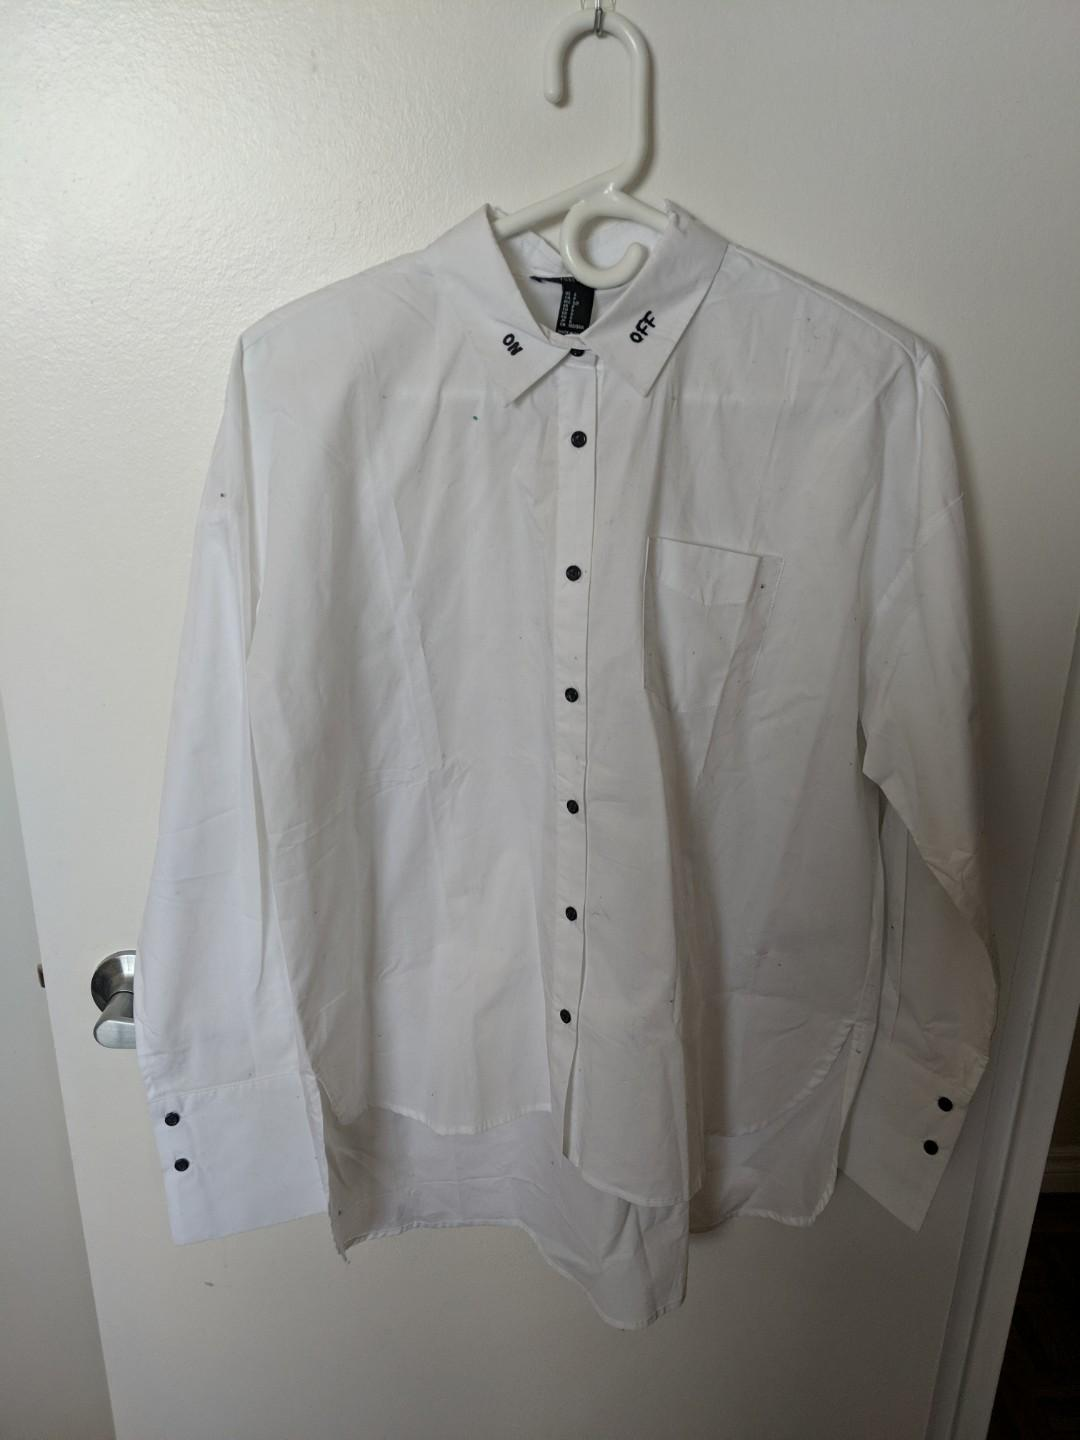 White blouse - size small, oversized *TAG STILL ON*